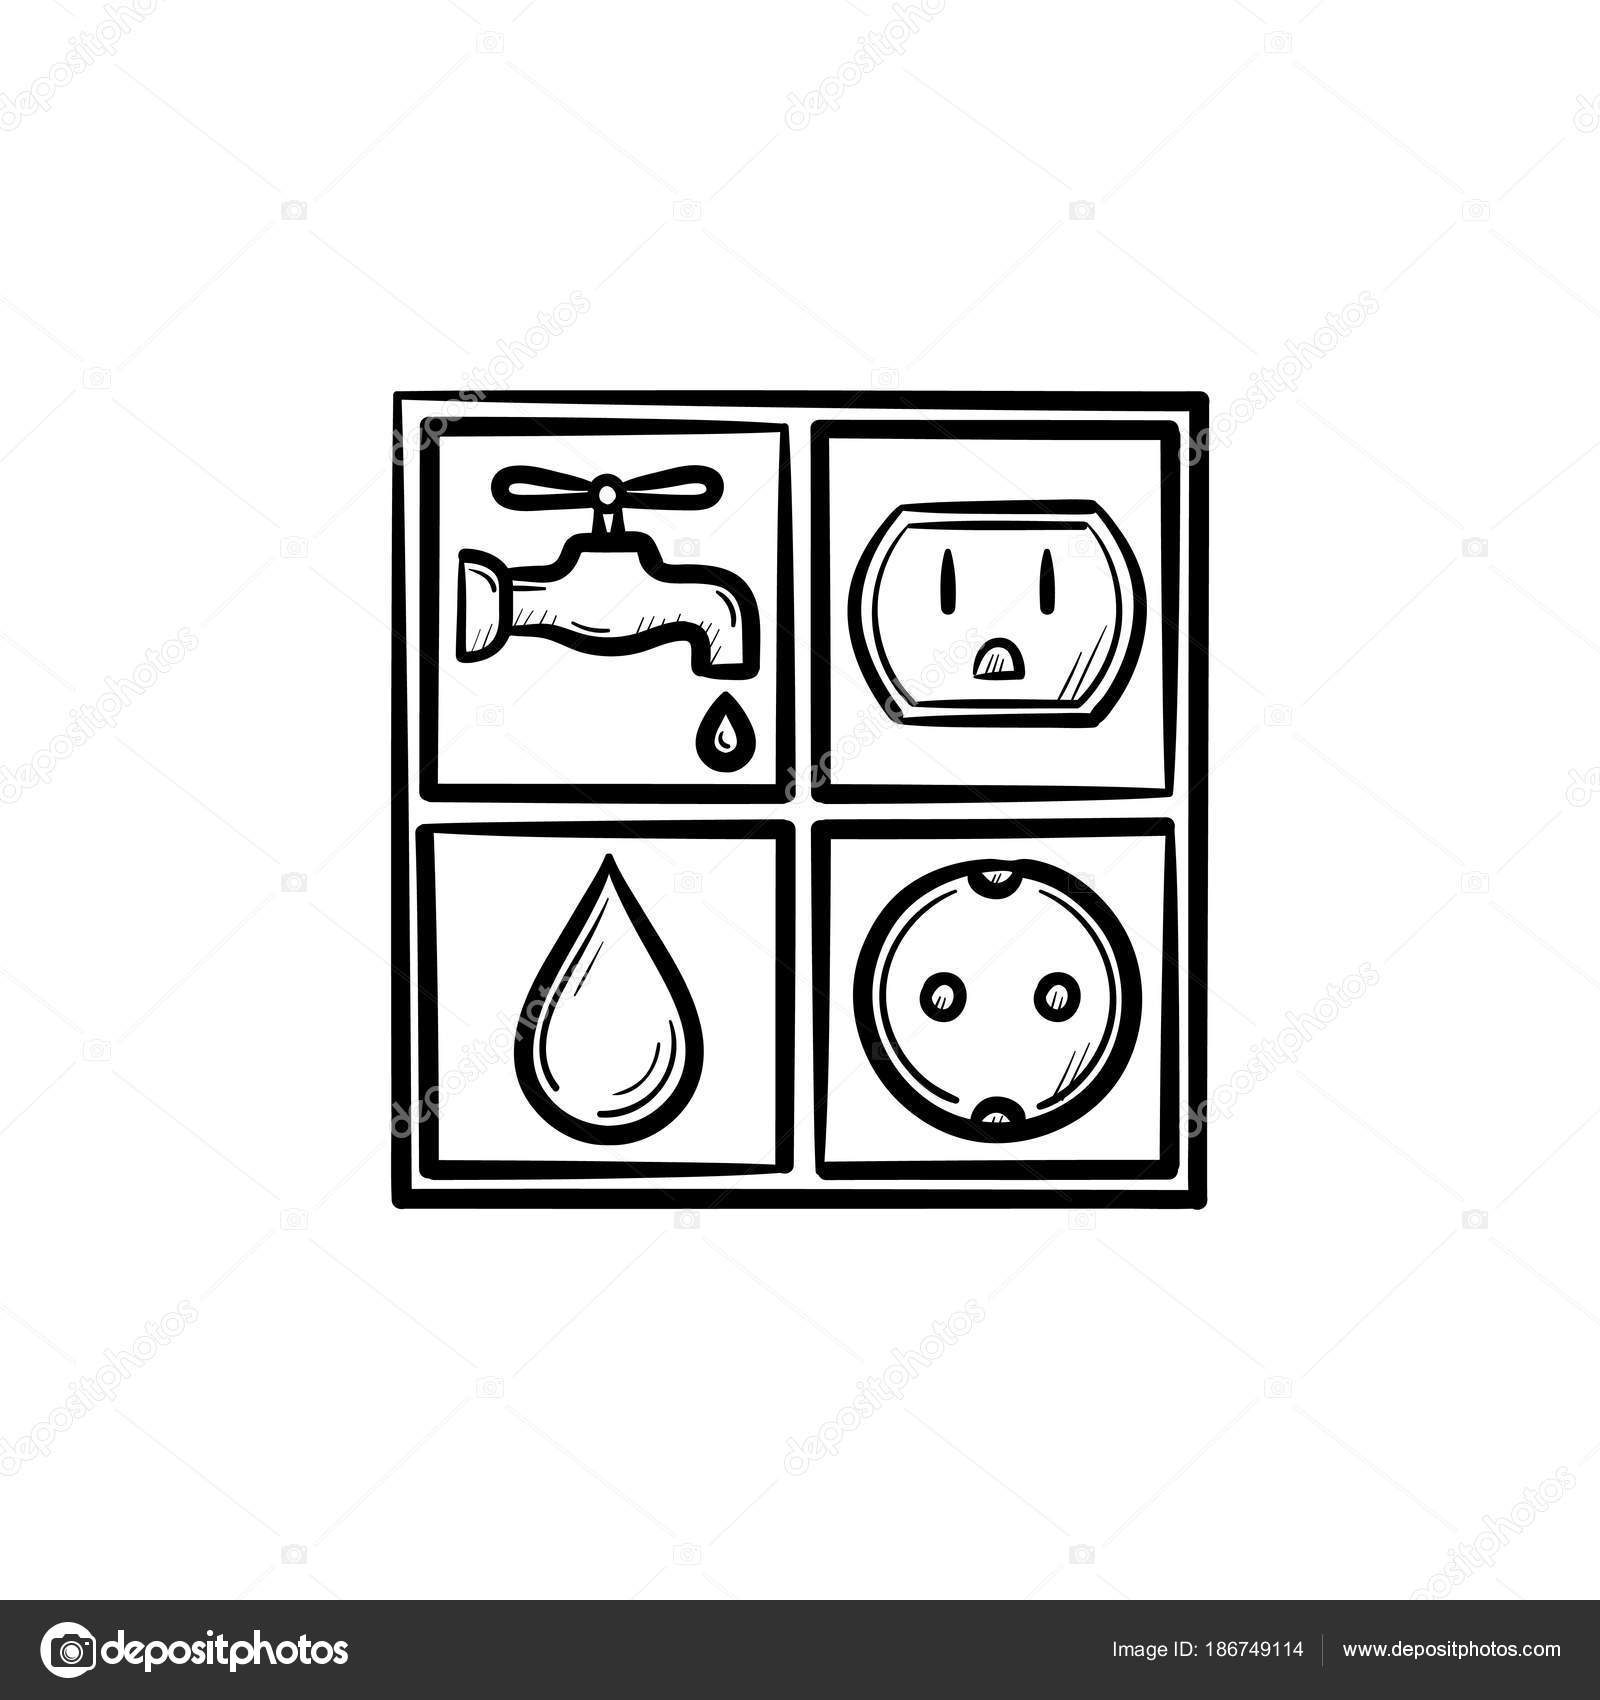 Electricity and water signs hand drawn sketch icon — Stock Vector ...